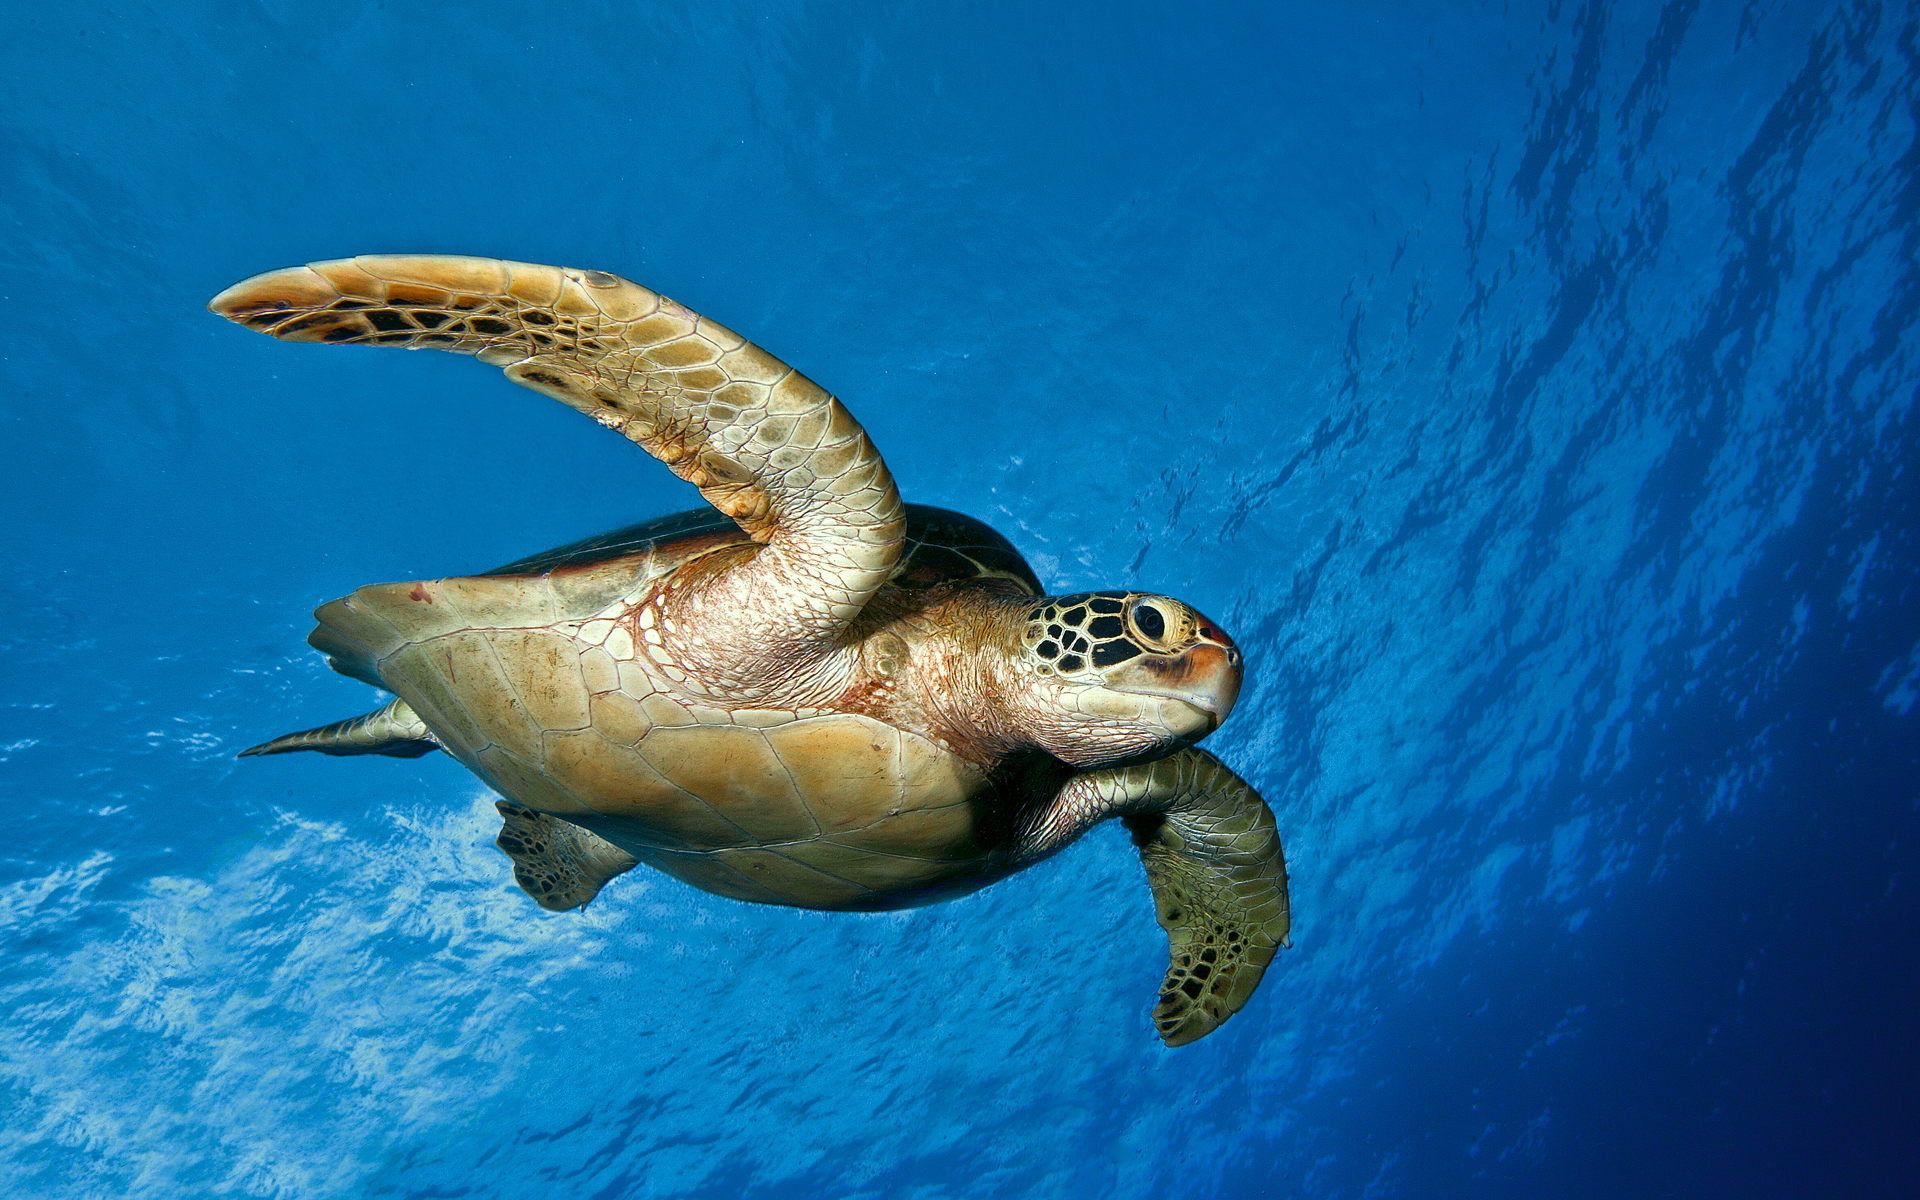 Turtle Close Up Face in Sea   HD Wallpapers